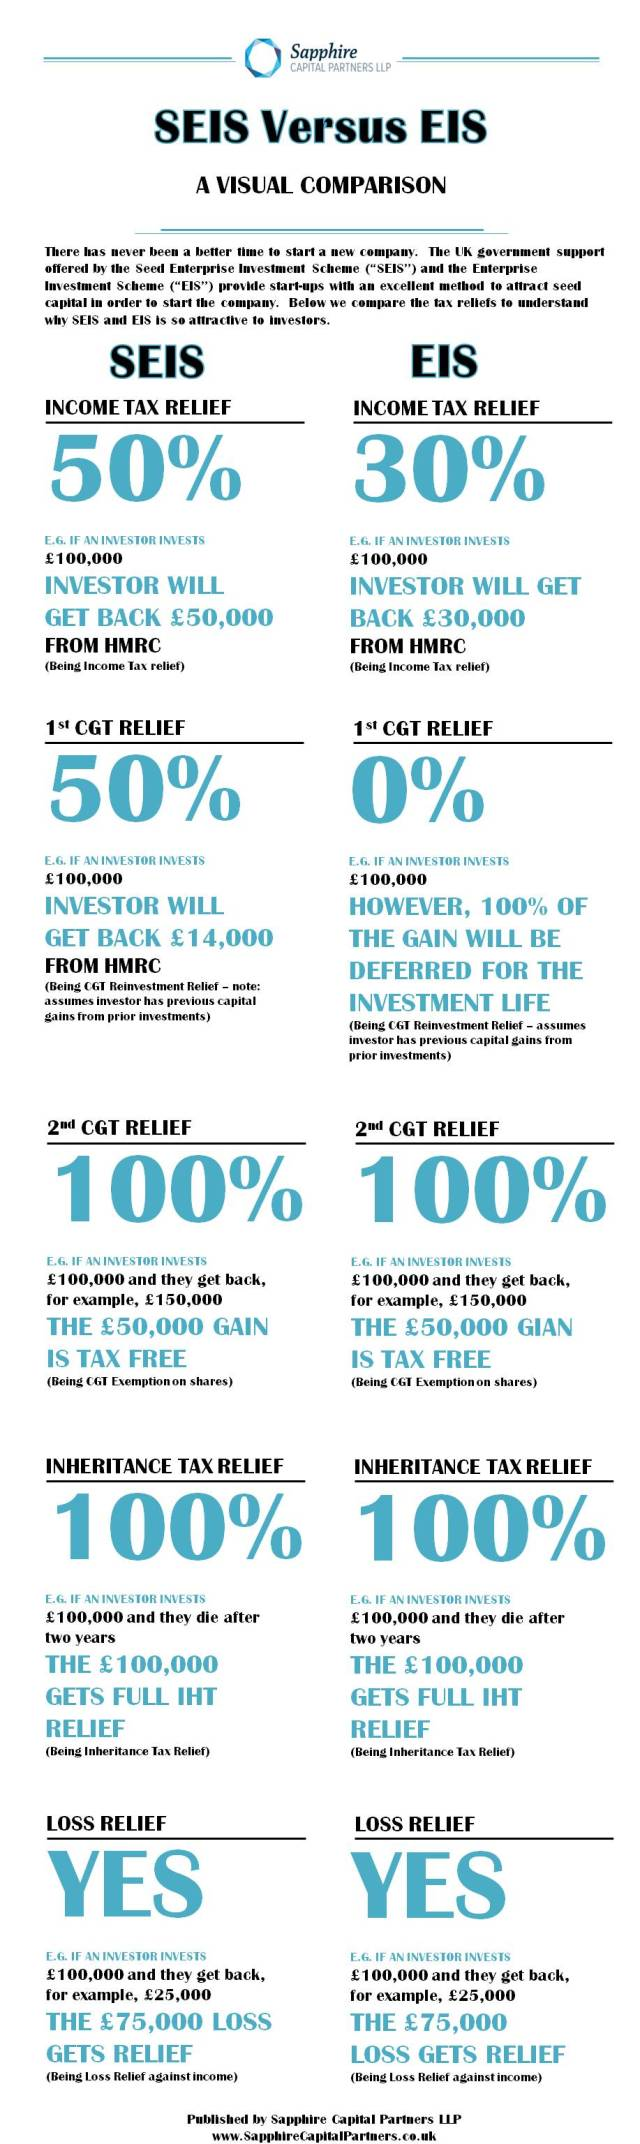 SEIS and EIS tax reliefs infographic